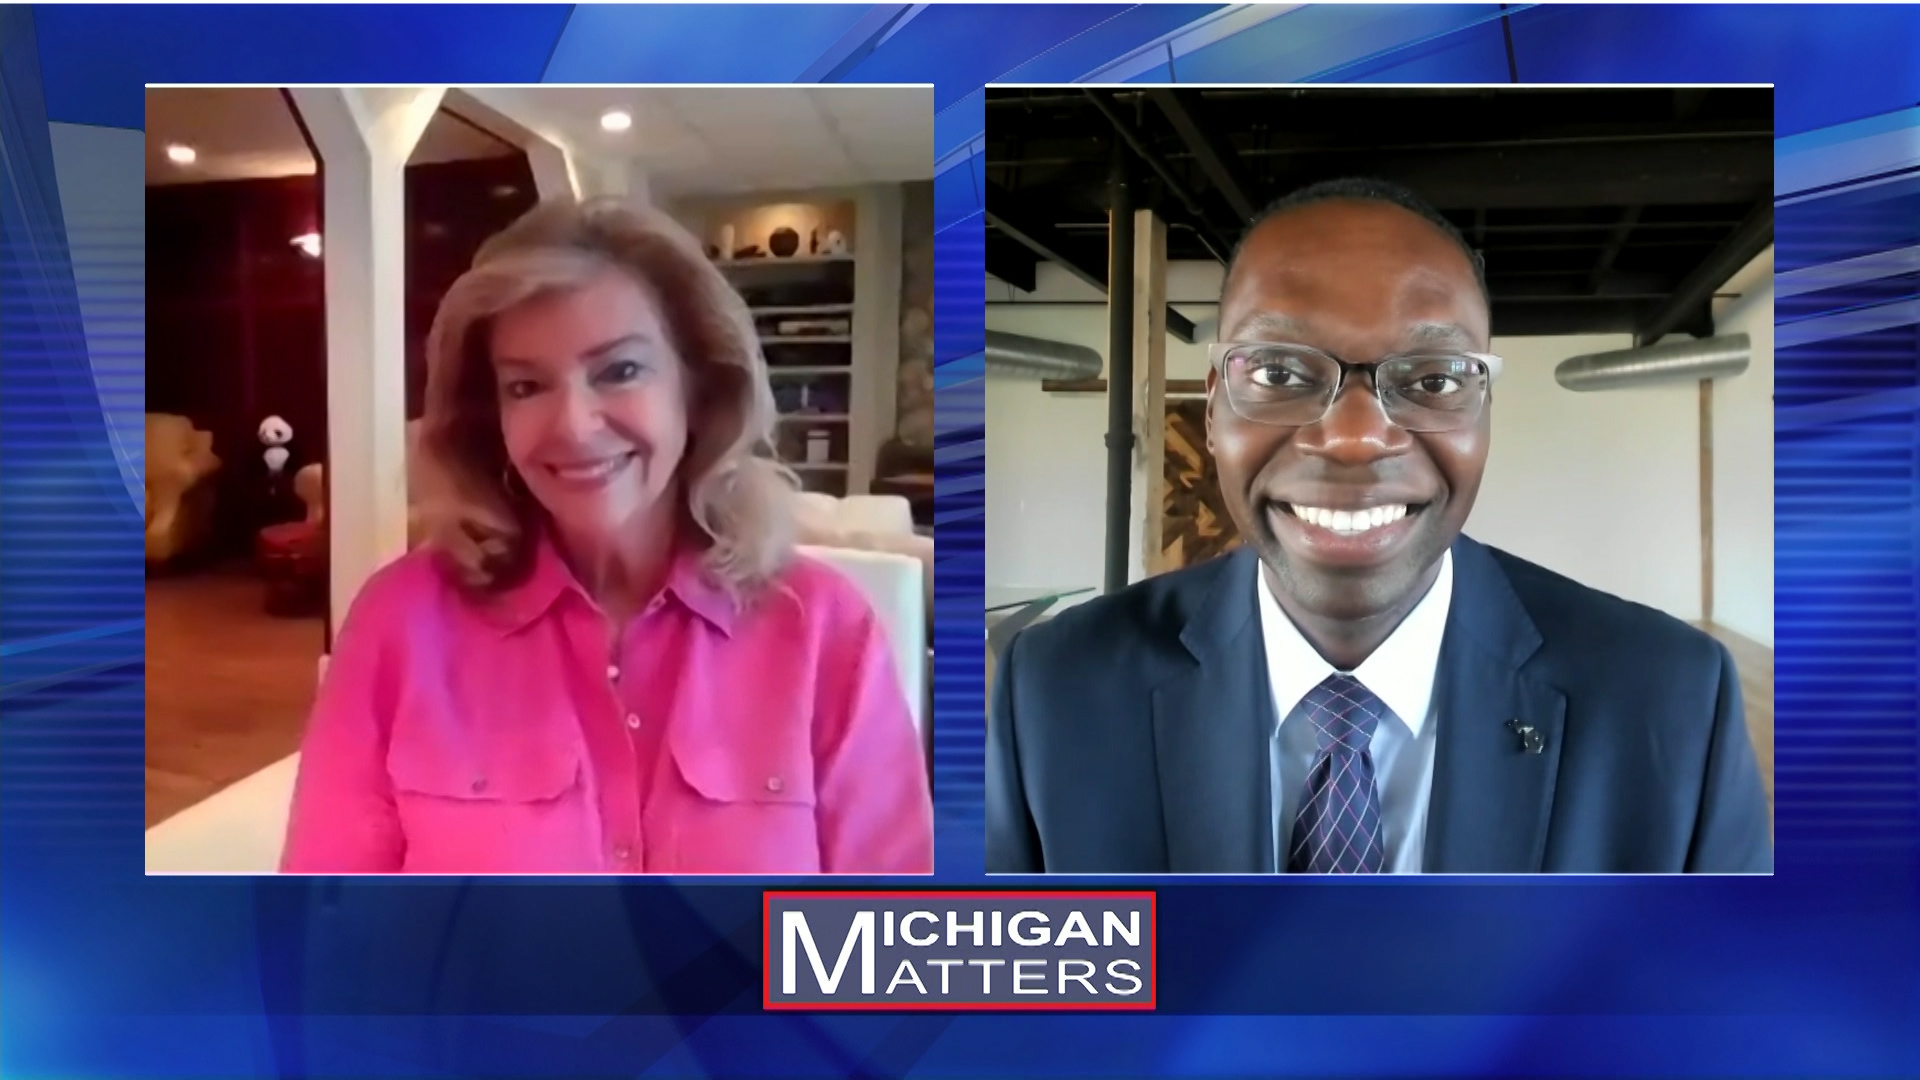 Michigan Matters Lt Gov Gilchrist New Detroit S Rafferty On Race Social Justice Cbs Detroit